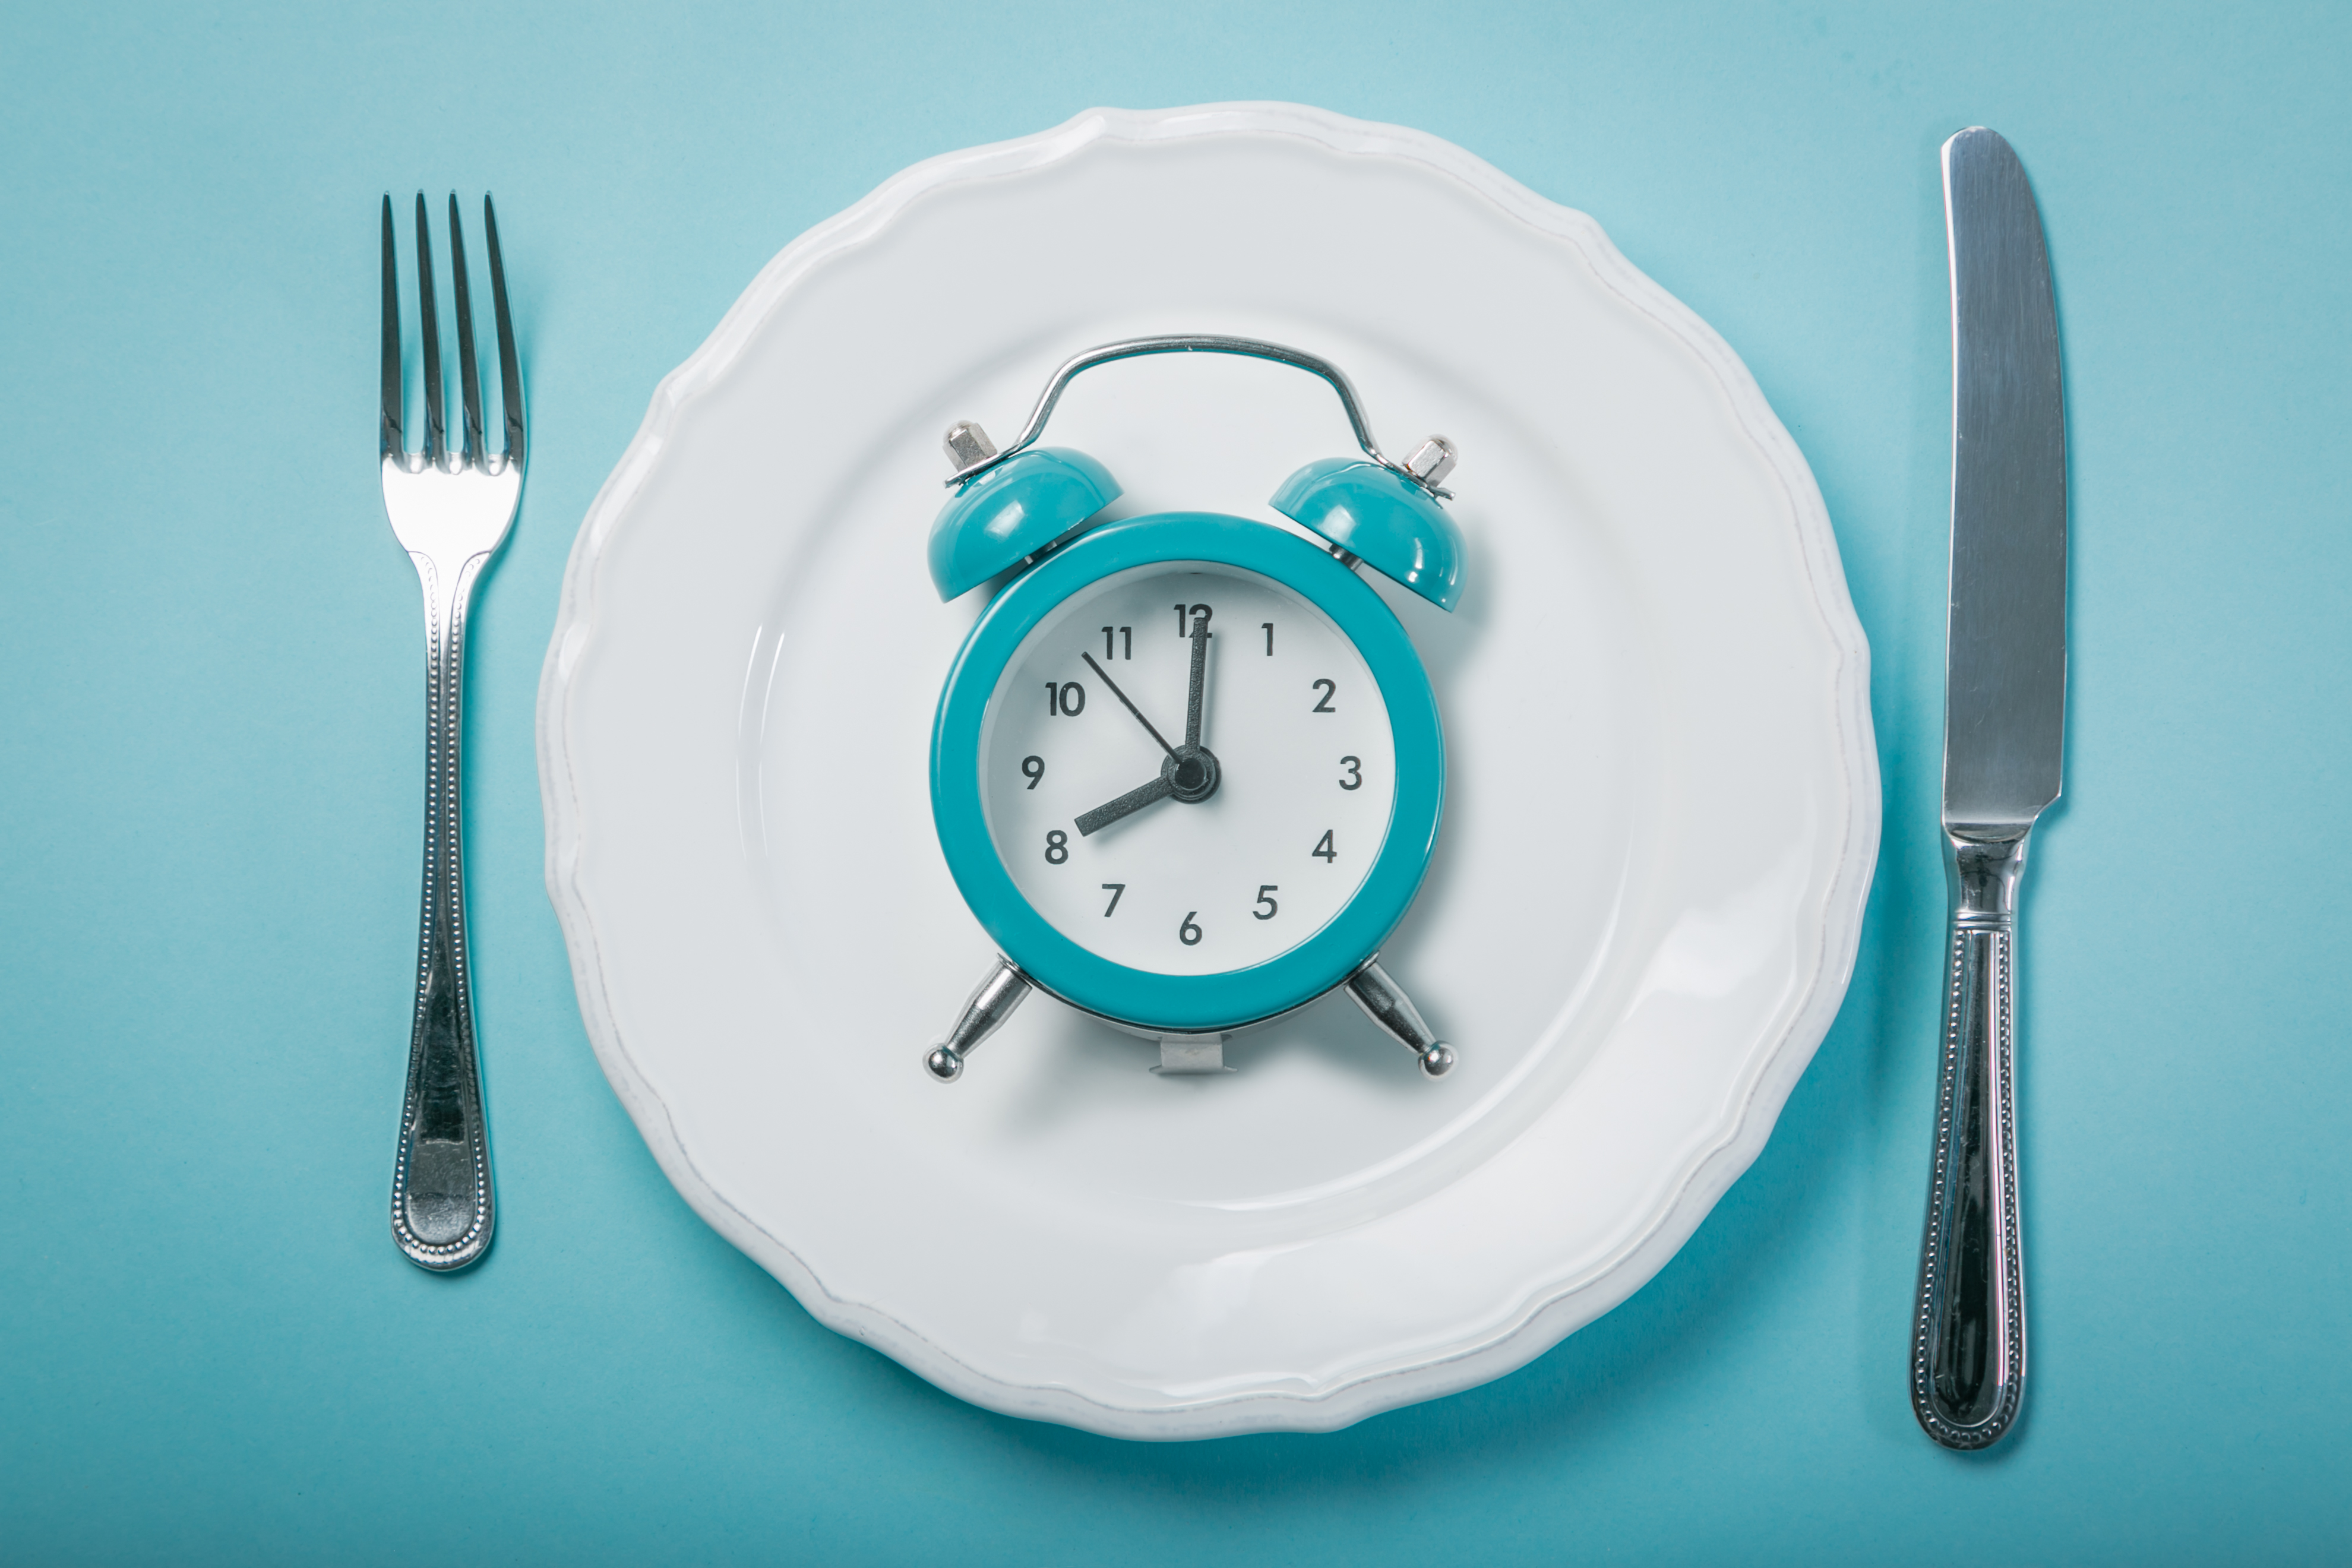 Noble Prize on Fasting as a Cure for Cancer